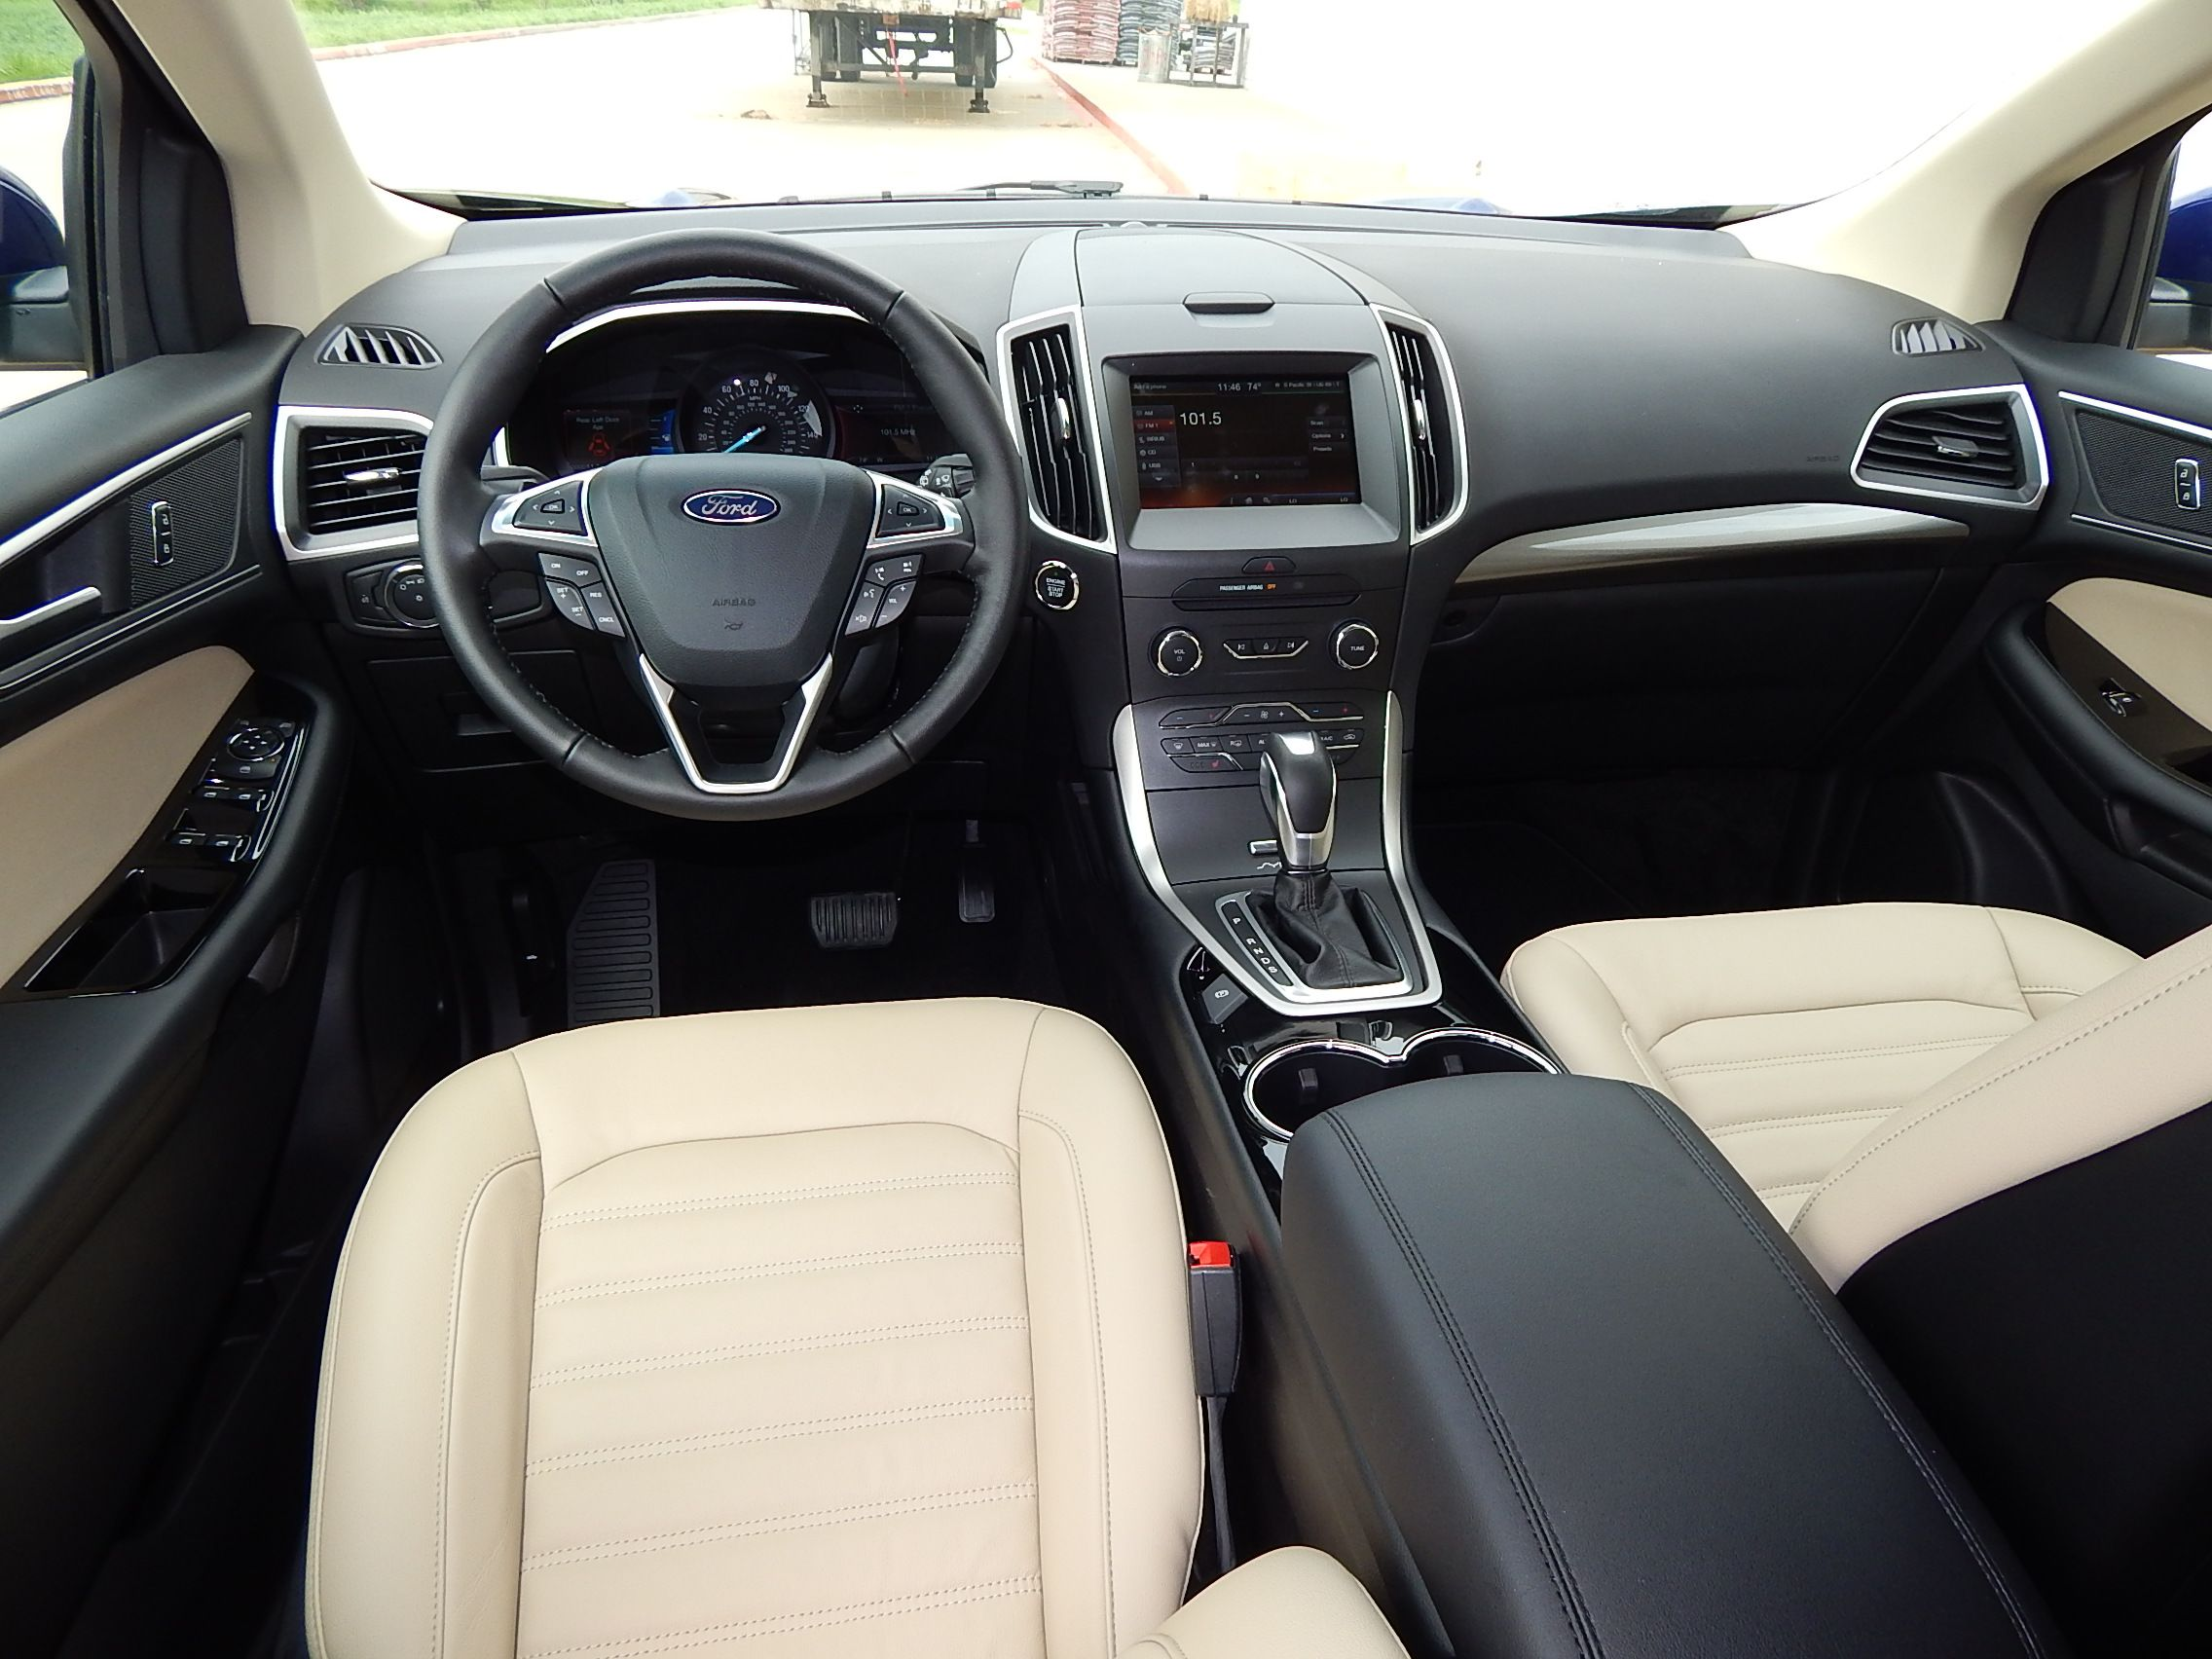 2015 ford edge interior with dune leather seats